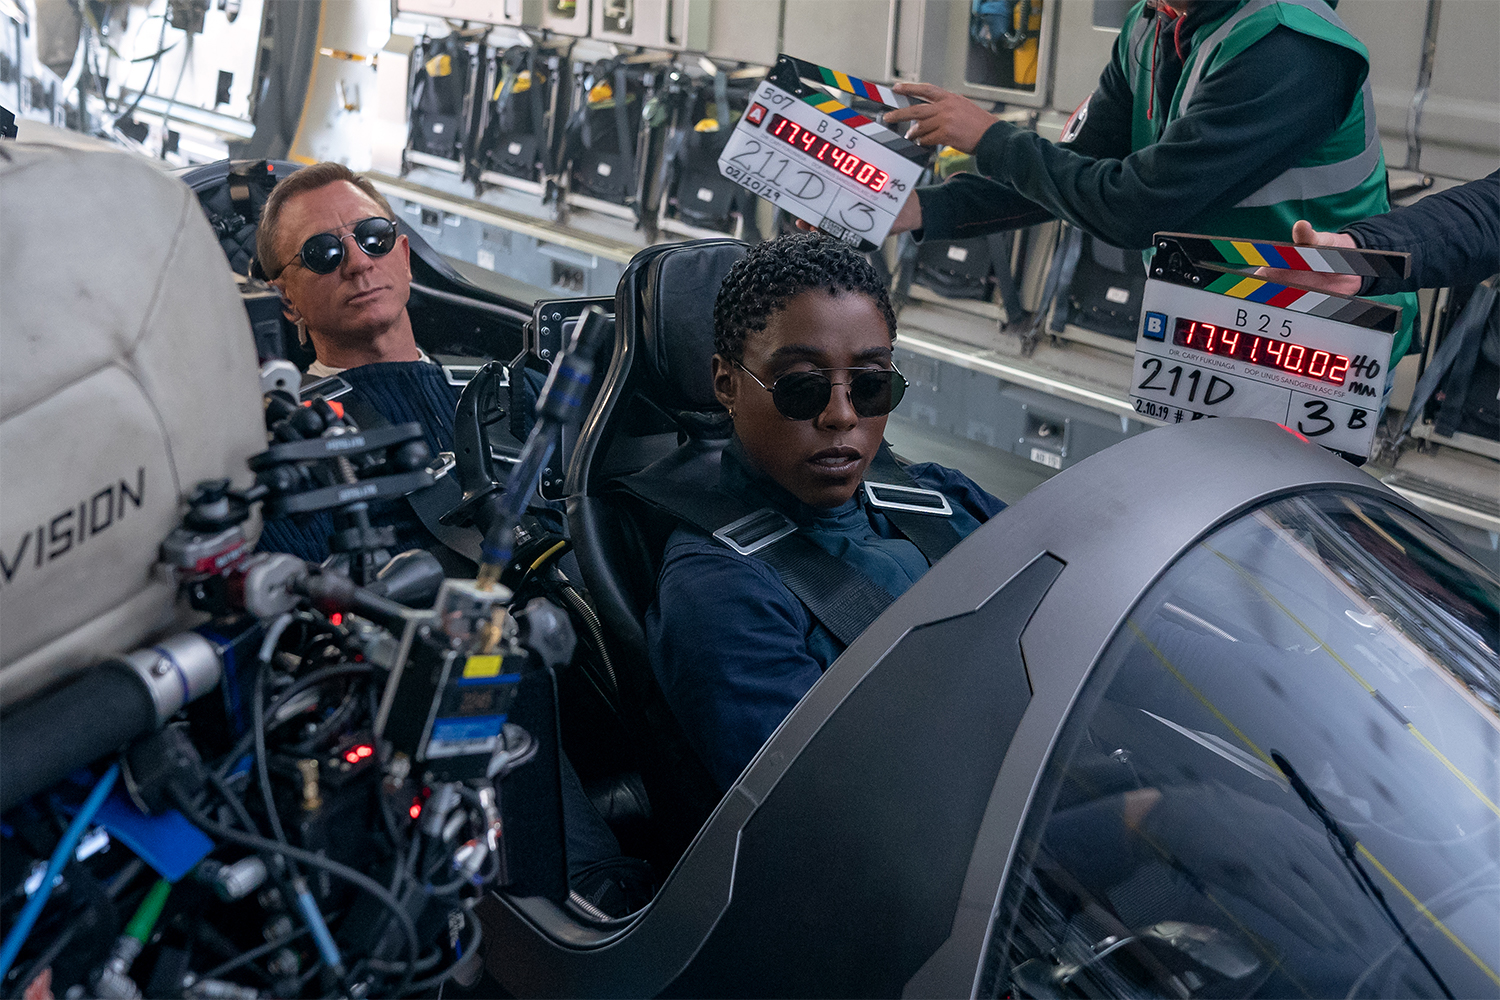 """Daniel Craig (who plays James Bond) and co-star Lashana Lynch (who plays Nomi) with cameras pointed at them during the filming of a scene in """"No Time to Die"""""""